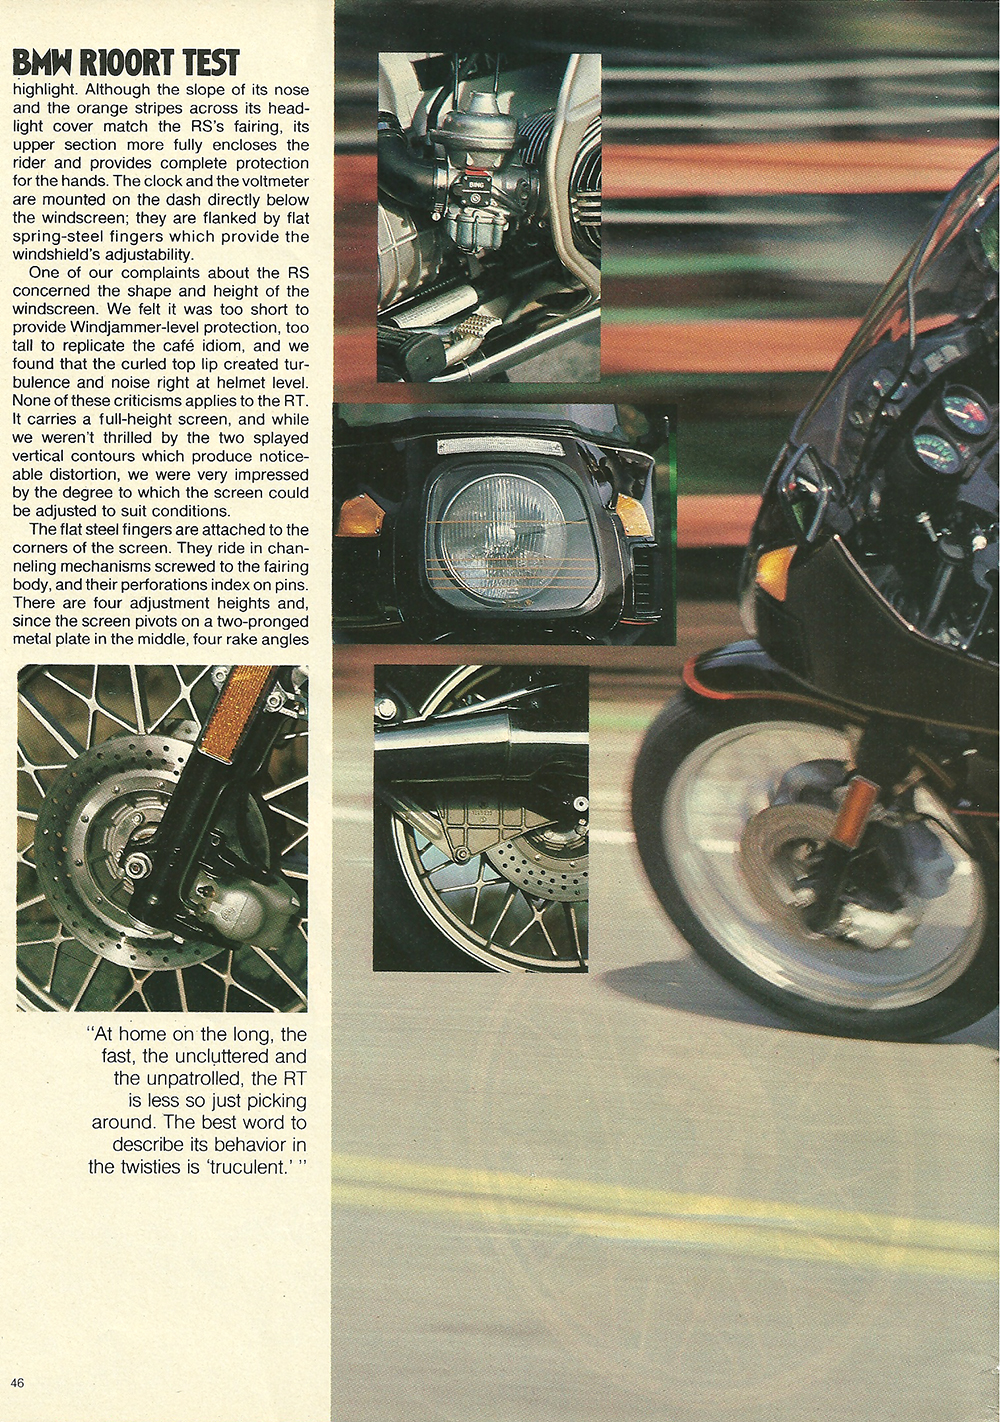 1979 BMW R100RT road test — Ye Olde Cycle Shoppe